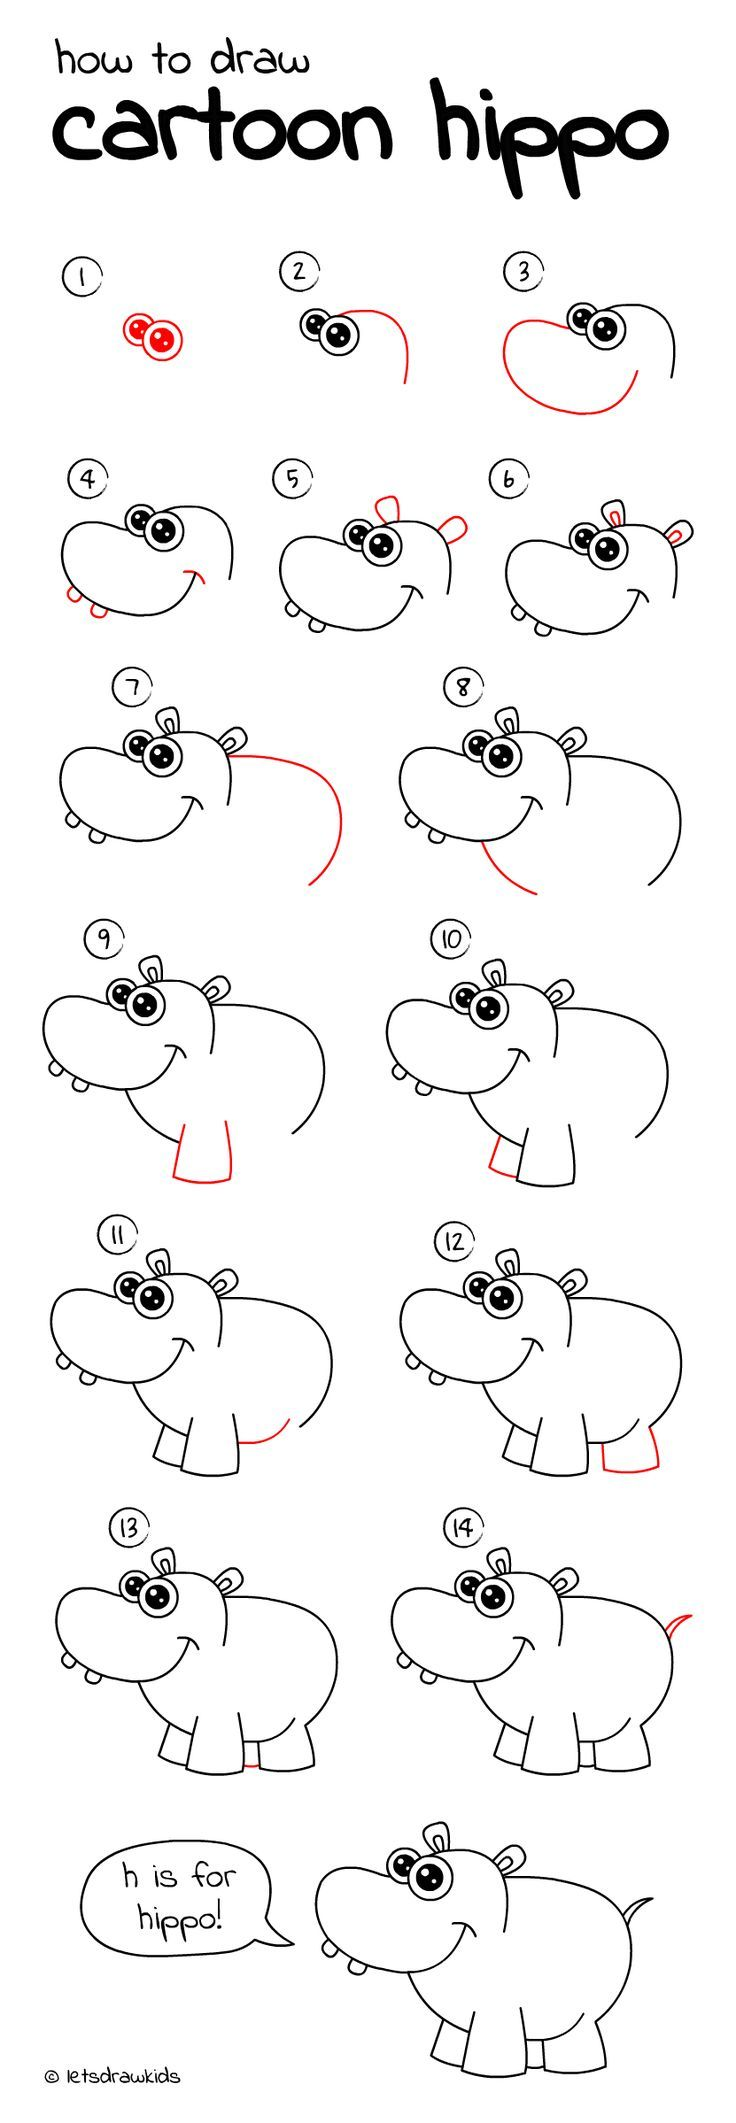 How to draw Cartoon Hippo. Easy drawing, step by step, perfect for kids! Let's draw kids. letsdrawkids.com/